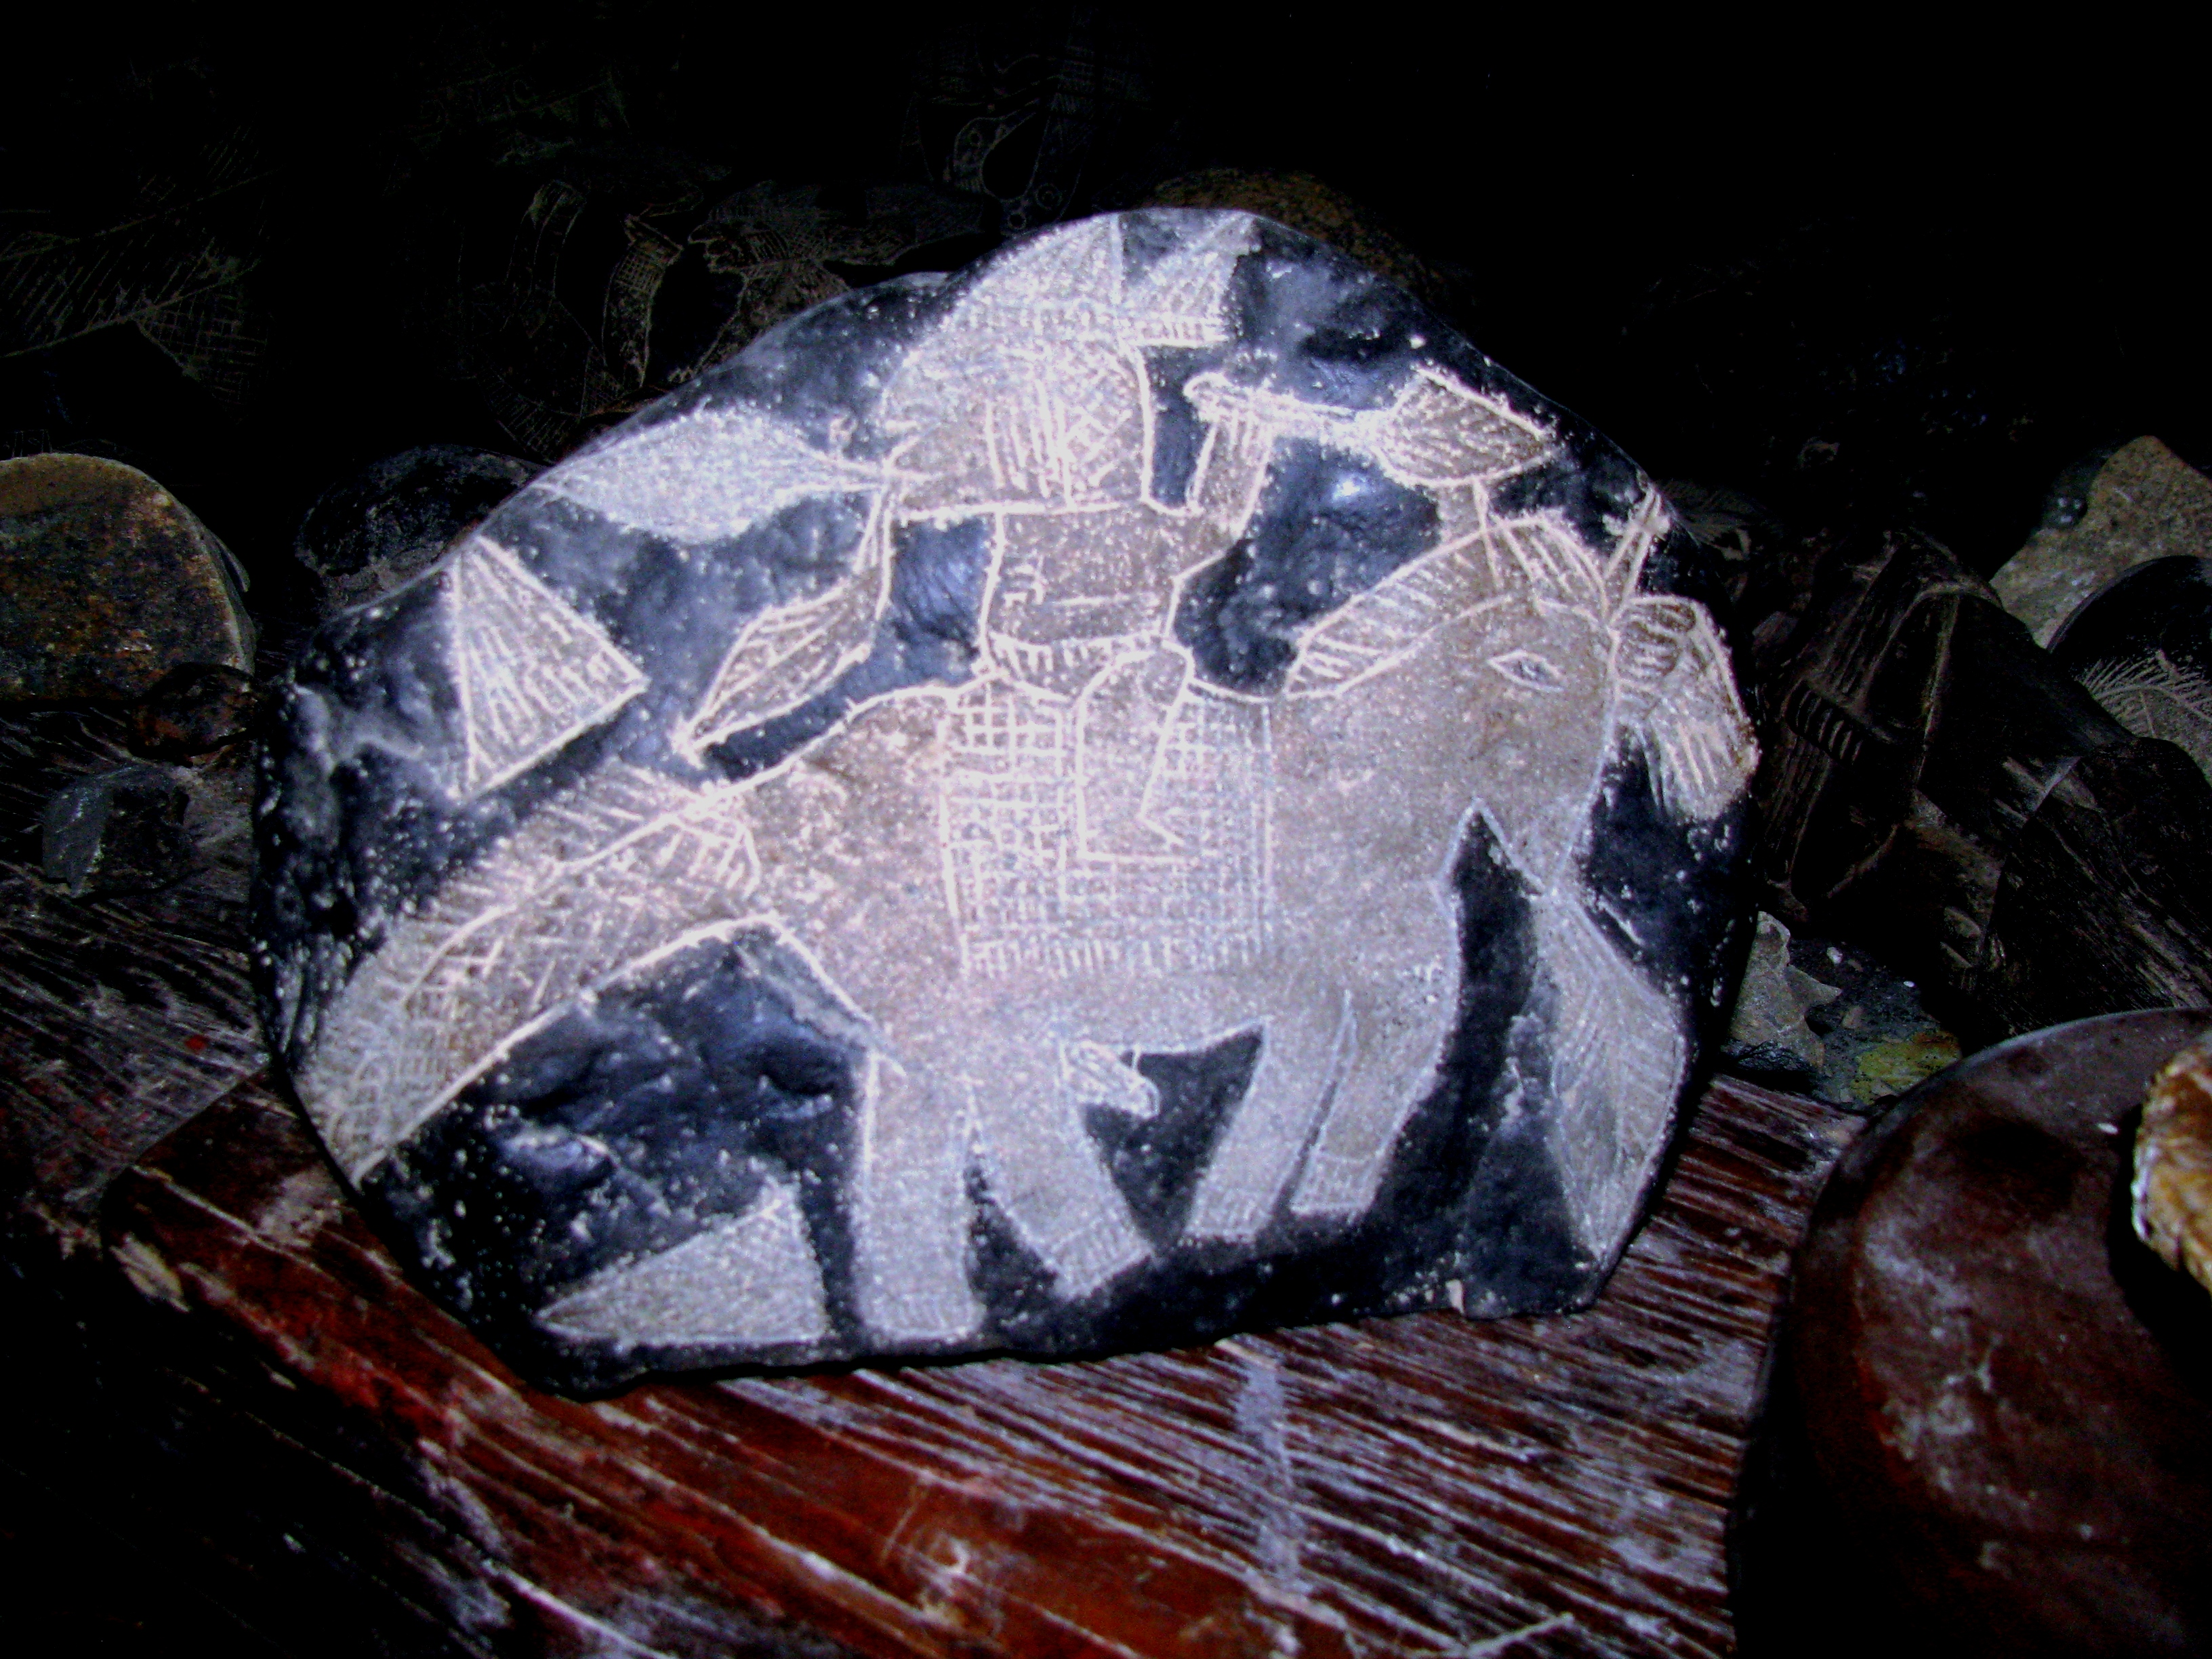 ica dating Dr dennis swift ica stones dr dennis swift claims there are certain ica stones that picture dinosaurs and man another major problem is the dating of the.